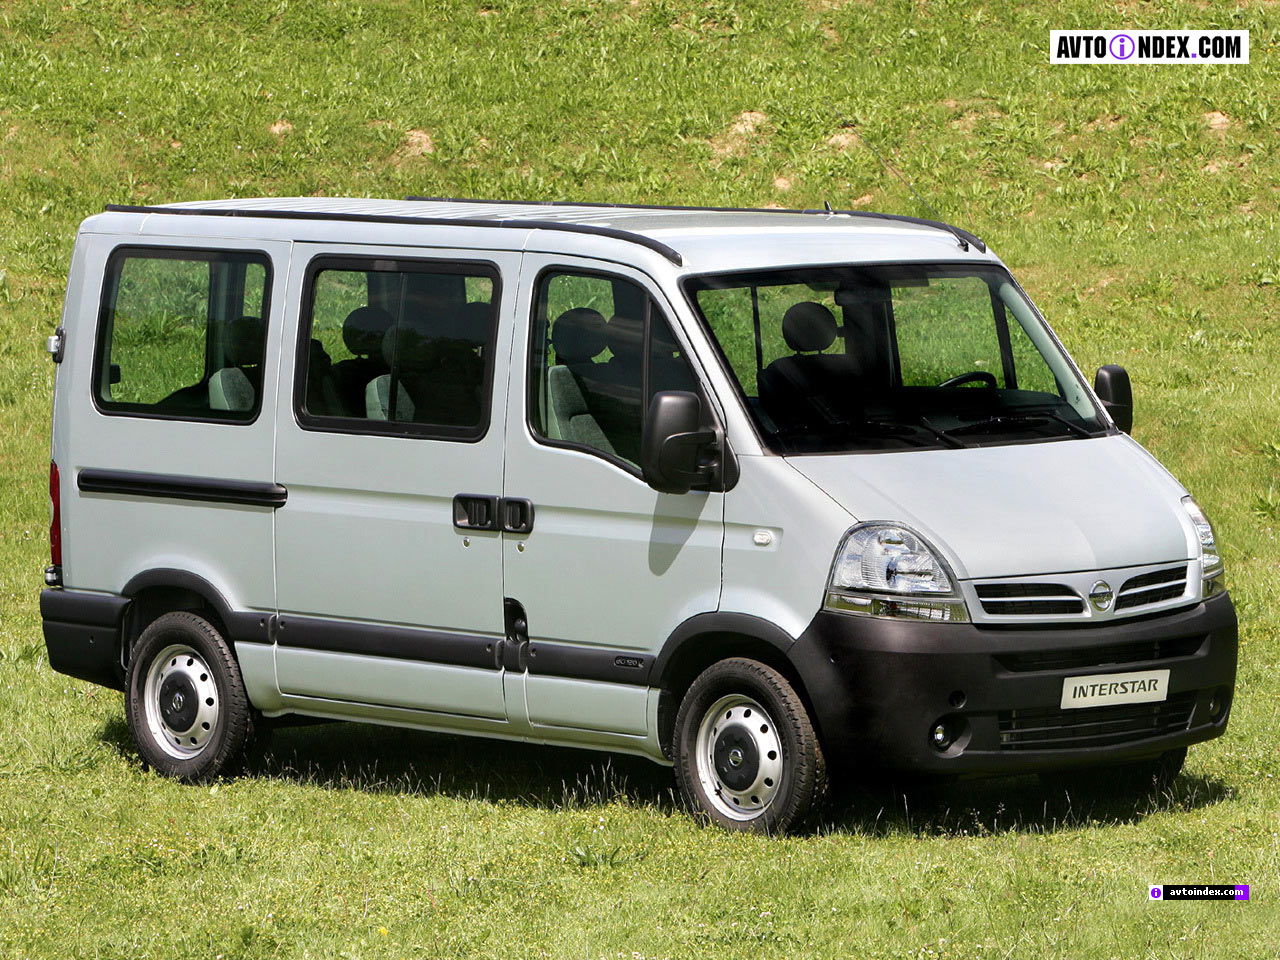 Nissan Interstar: 6 фото